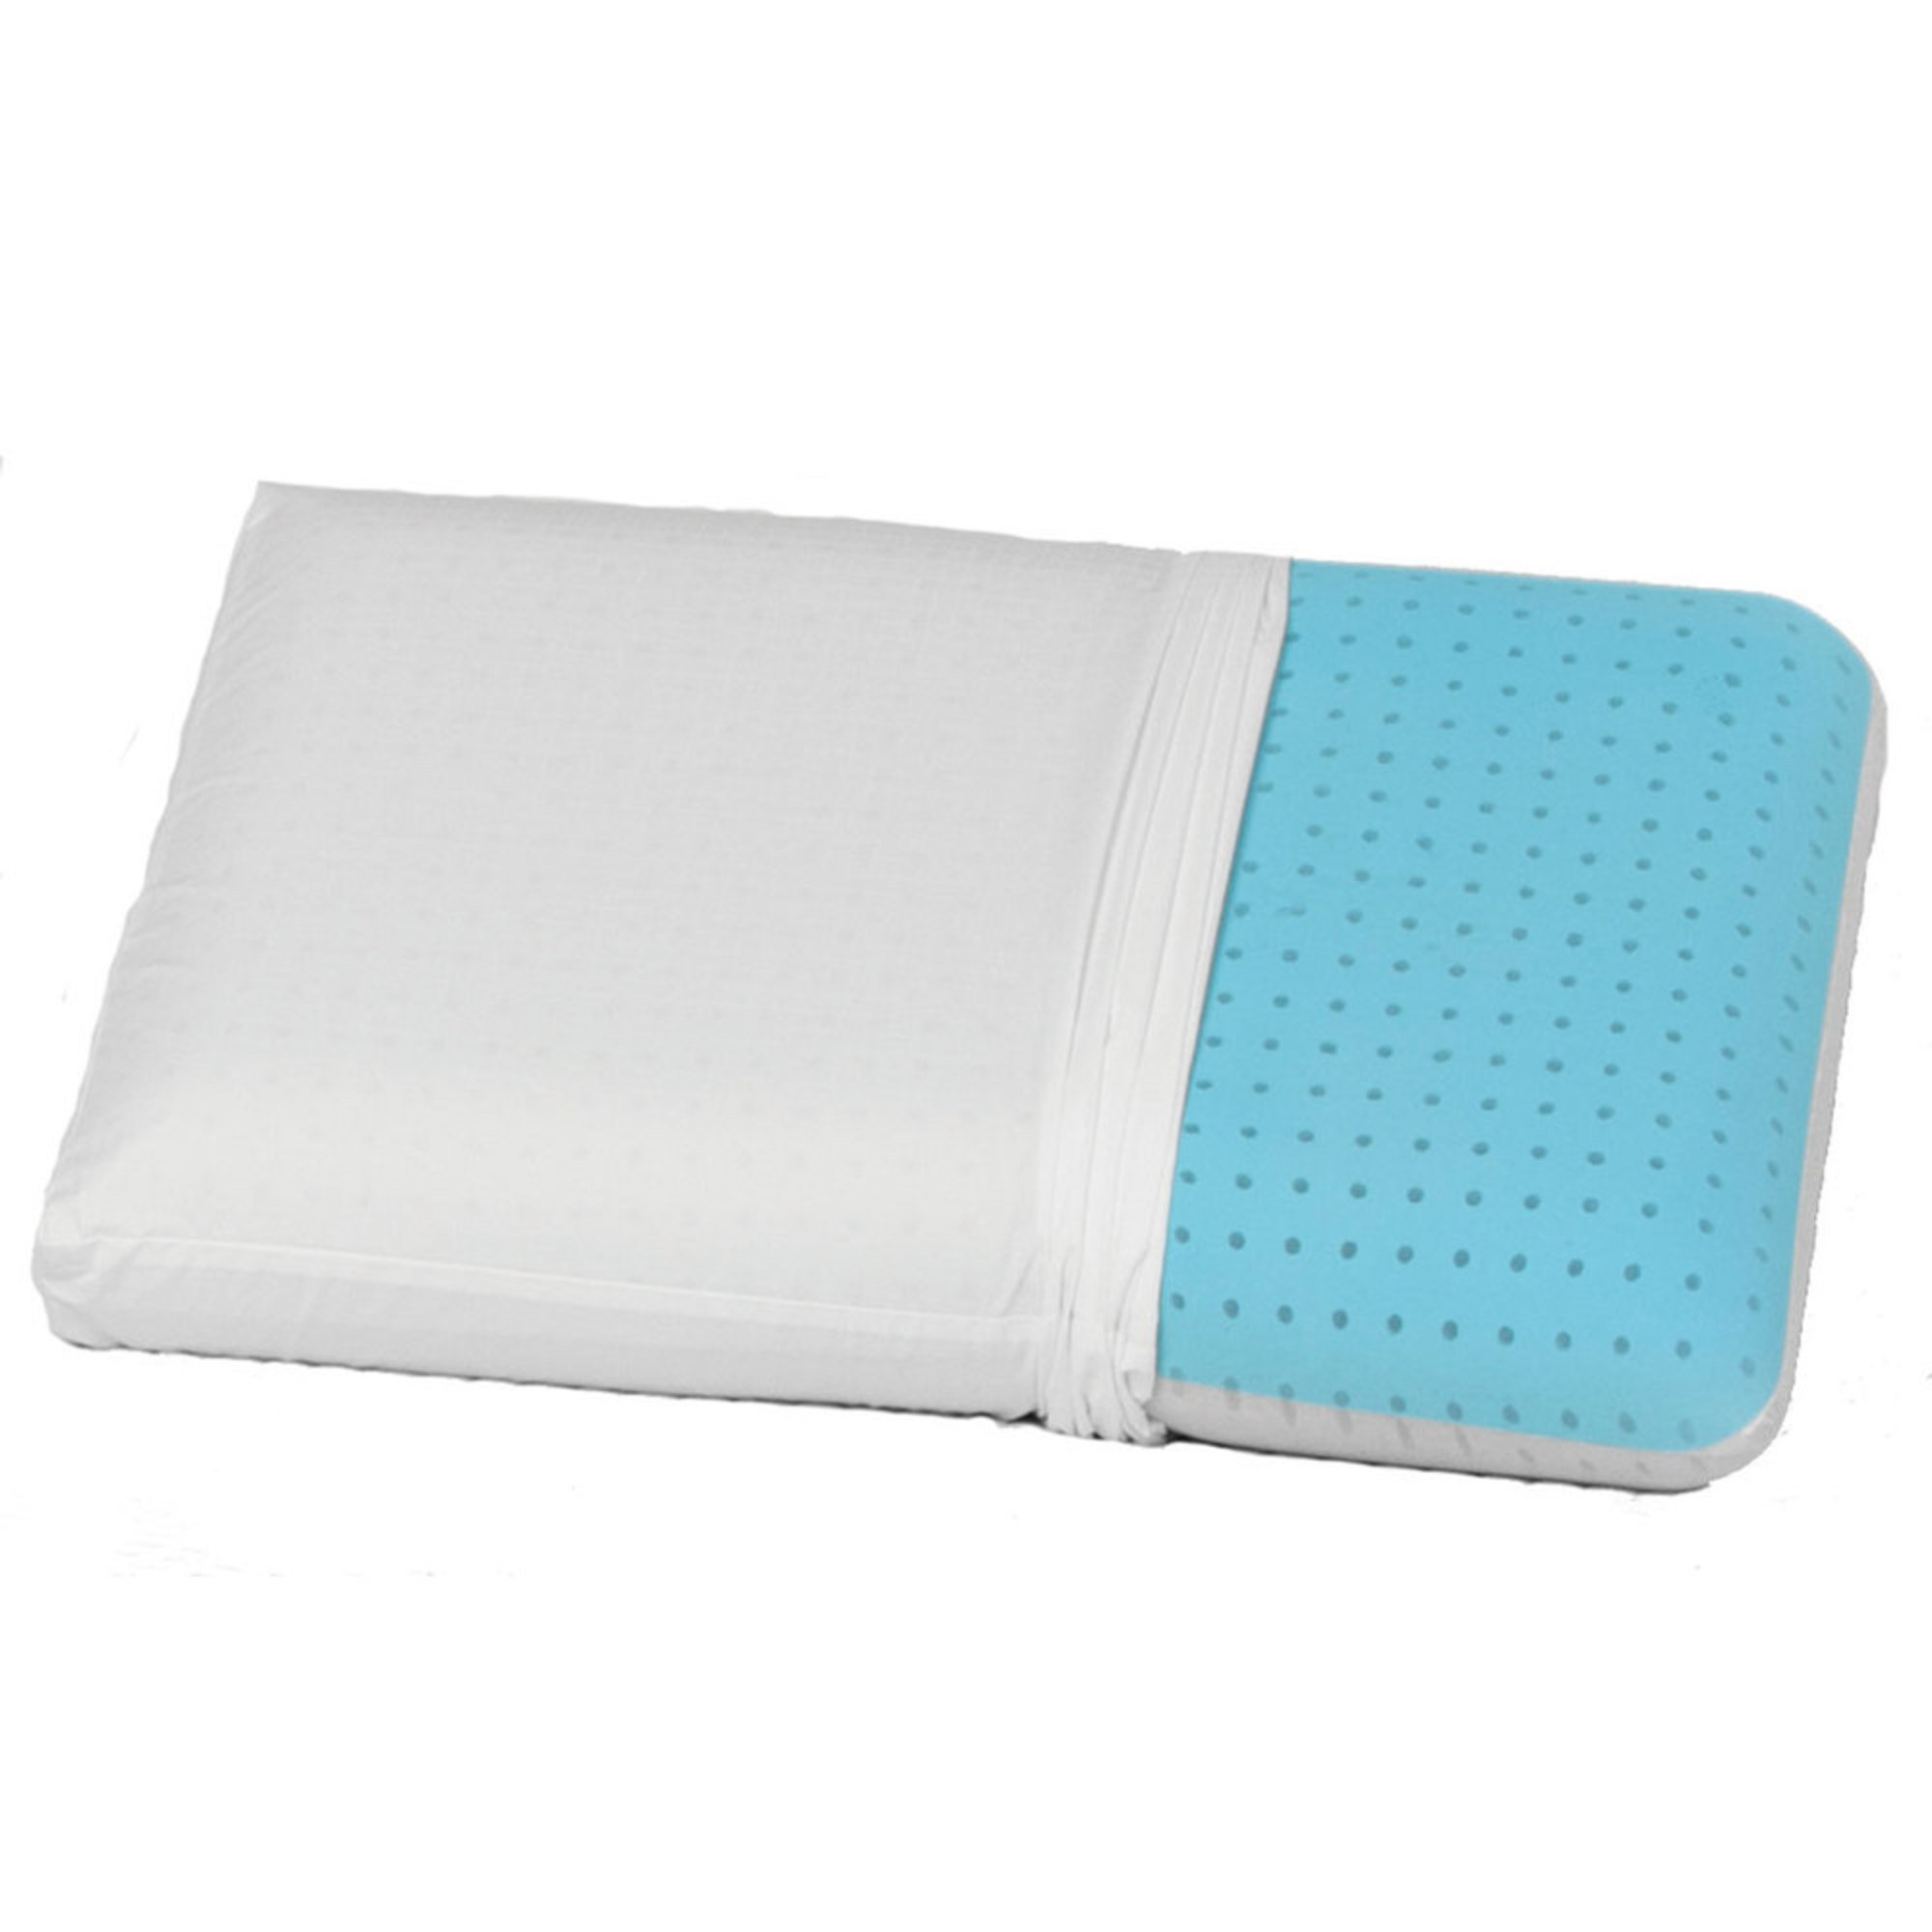 Beautyrest Pillows Allied Heating And Air